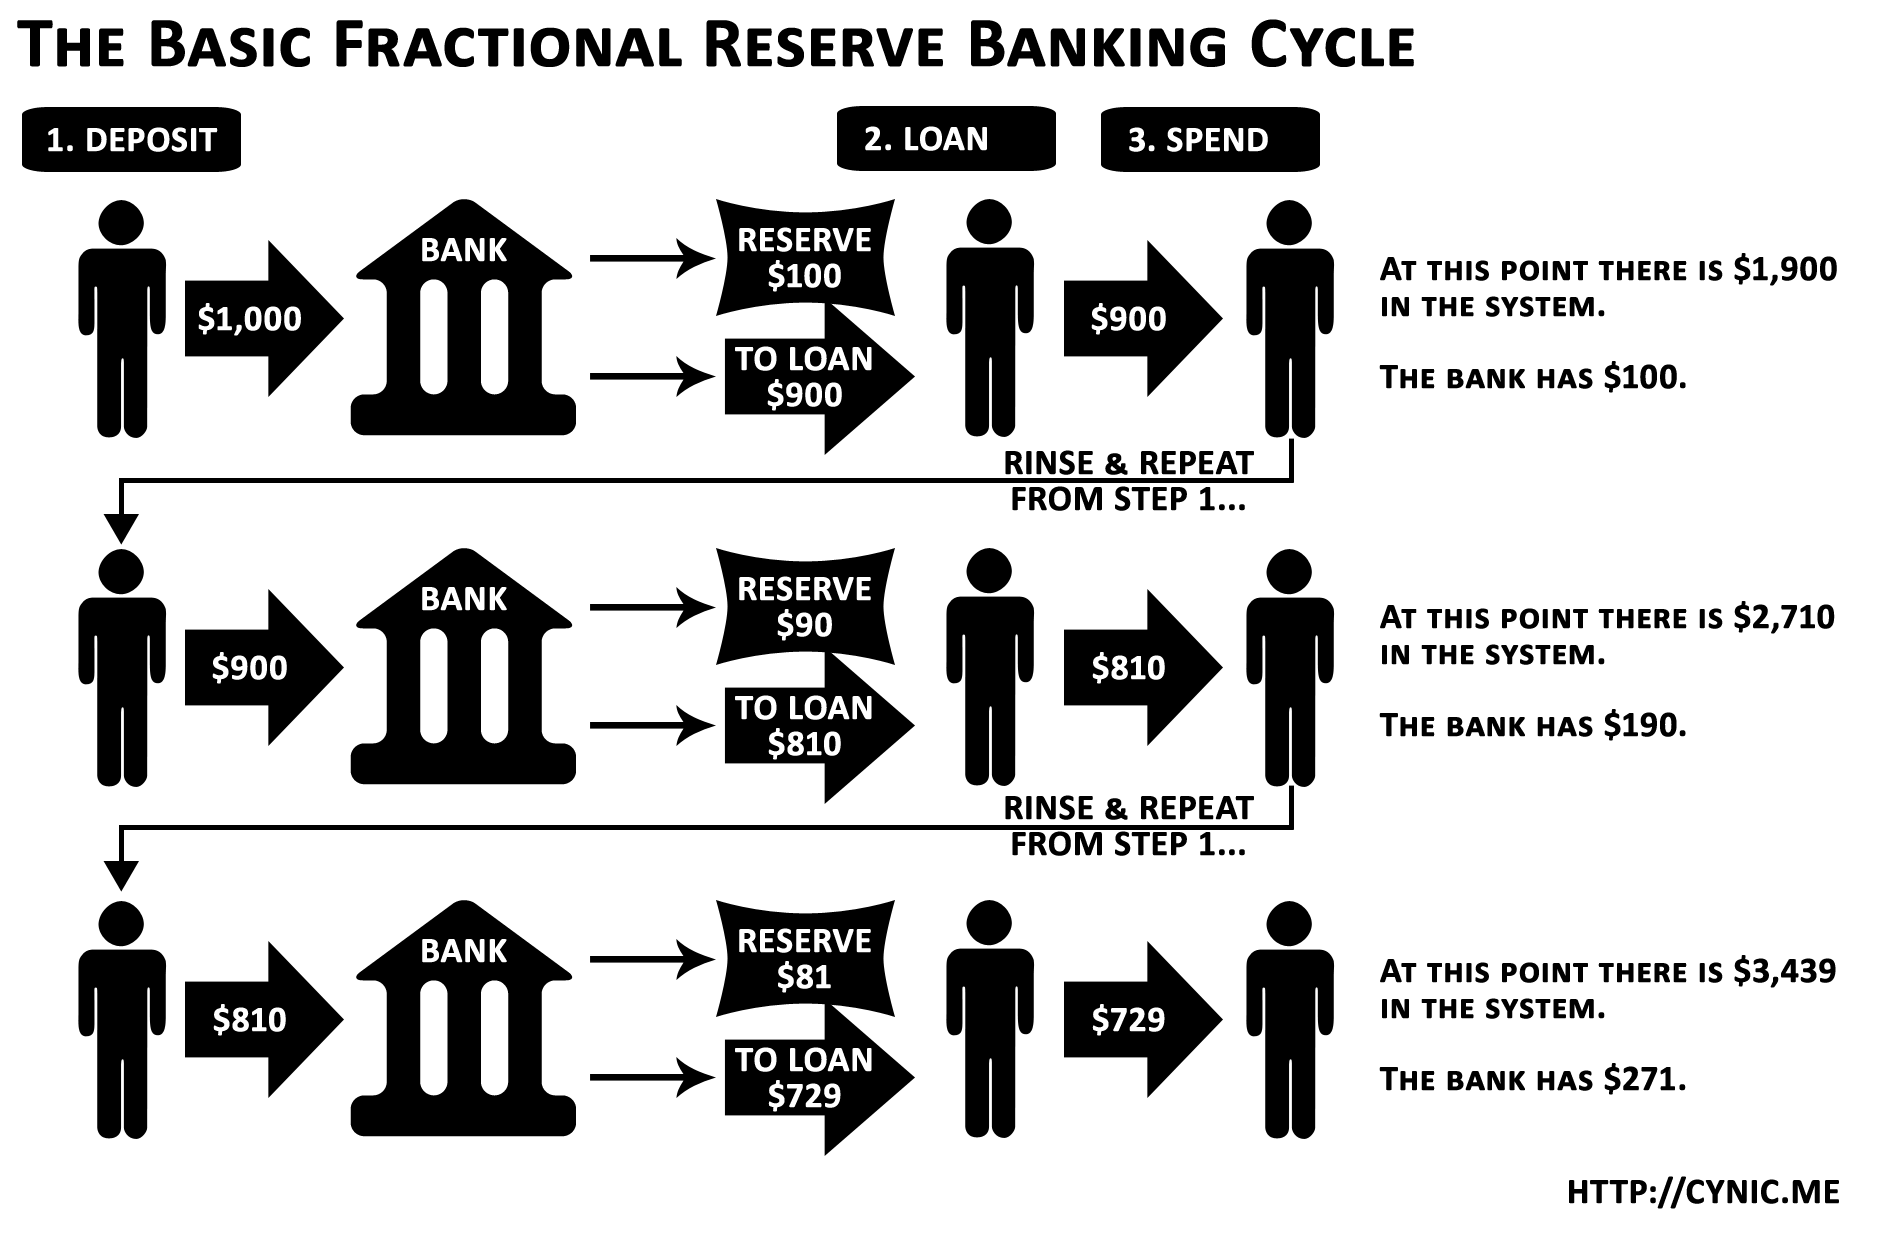 THE BASIC FRACTIONAL RESERVE BANKING CYCLE 1. DEPOSIT $1,000 $900 2.   LOAN $100 TO LOAN $900 3. SPEND $900 RINSE & REPEAT FROM STEP 1...   $810 TO LOAN $810 RINSE & REPEAT FROM STEP 1... AT THIS POINT THERE IS   $1,900 IN THE SYSTEM. THE BANK HAS $100. AT THIS POINT THERE IS $2,710   IN THE SYSTEM. THE BANK HAS $190. AT THIS POINT THERE IS $3,439 IN THE   SYSTEM. THE BANK HAS $271. HTTP://CYNIC.ME